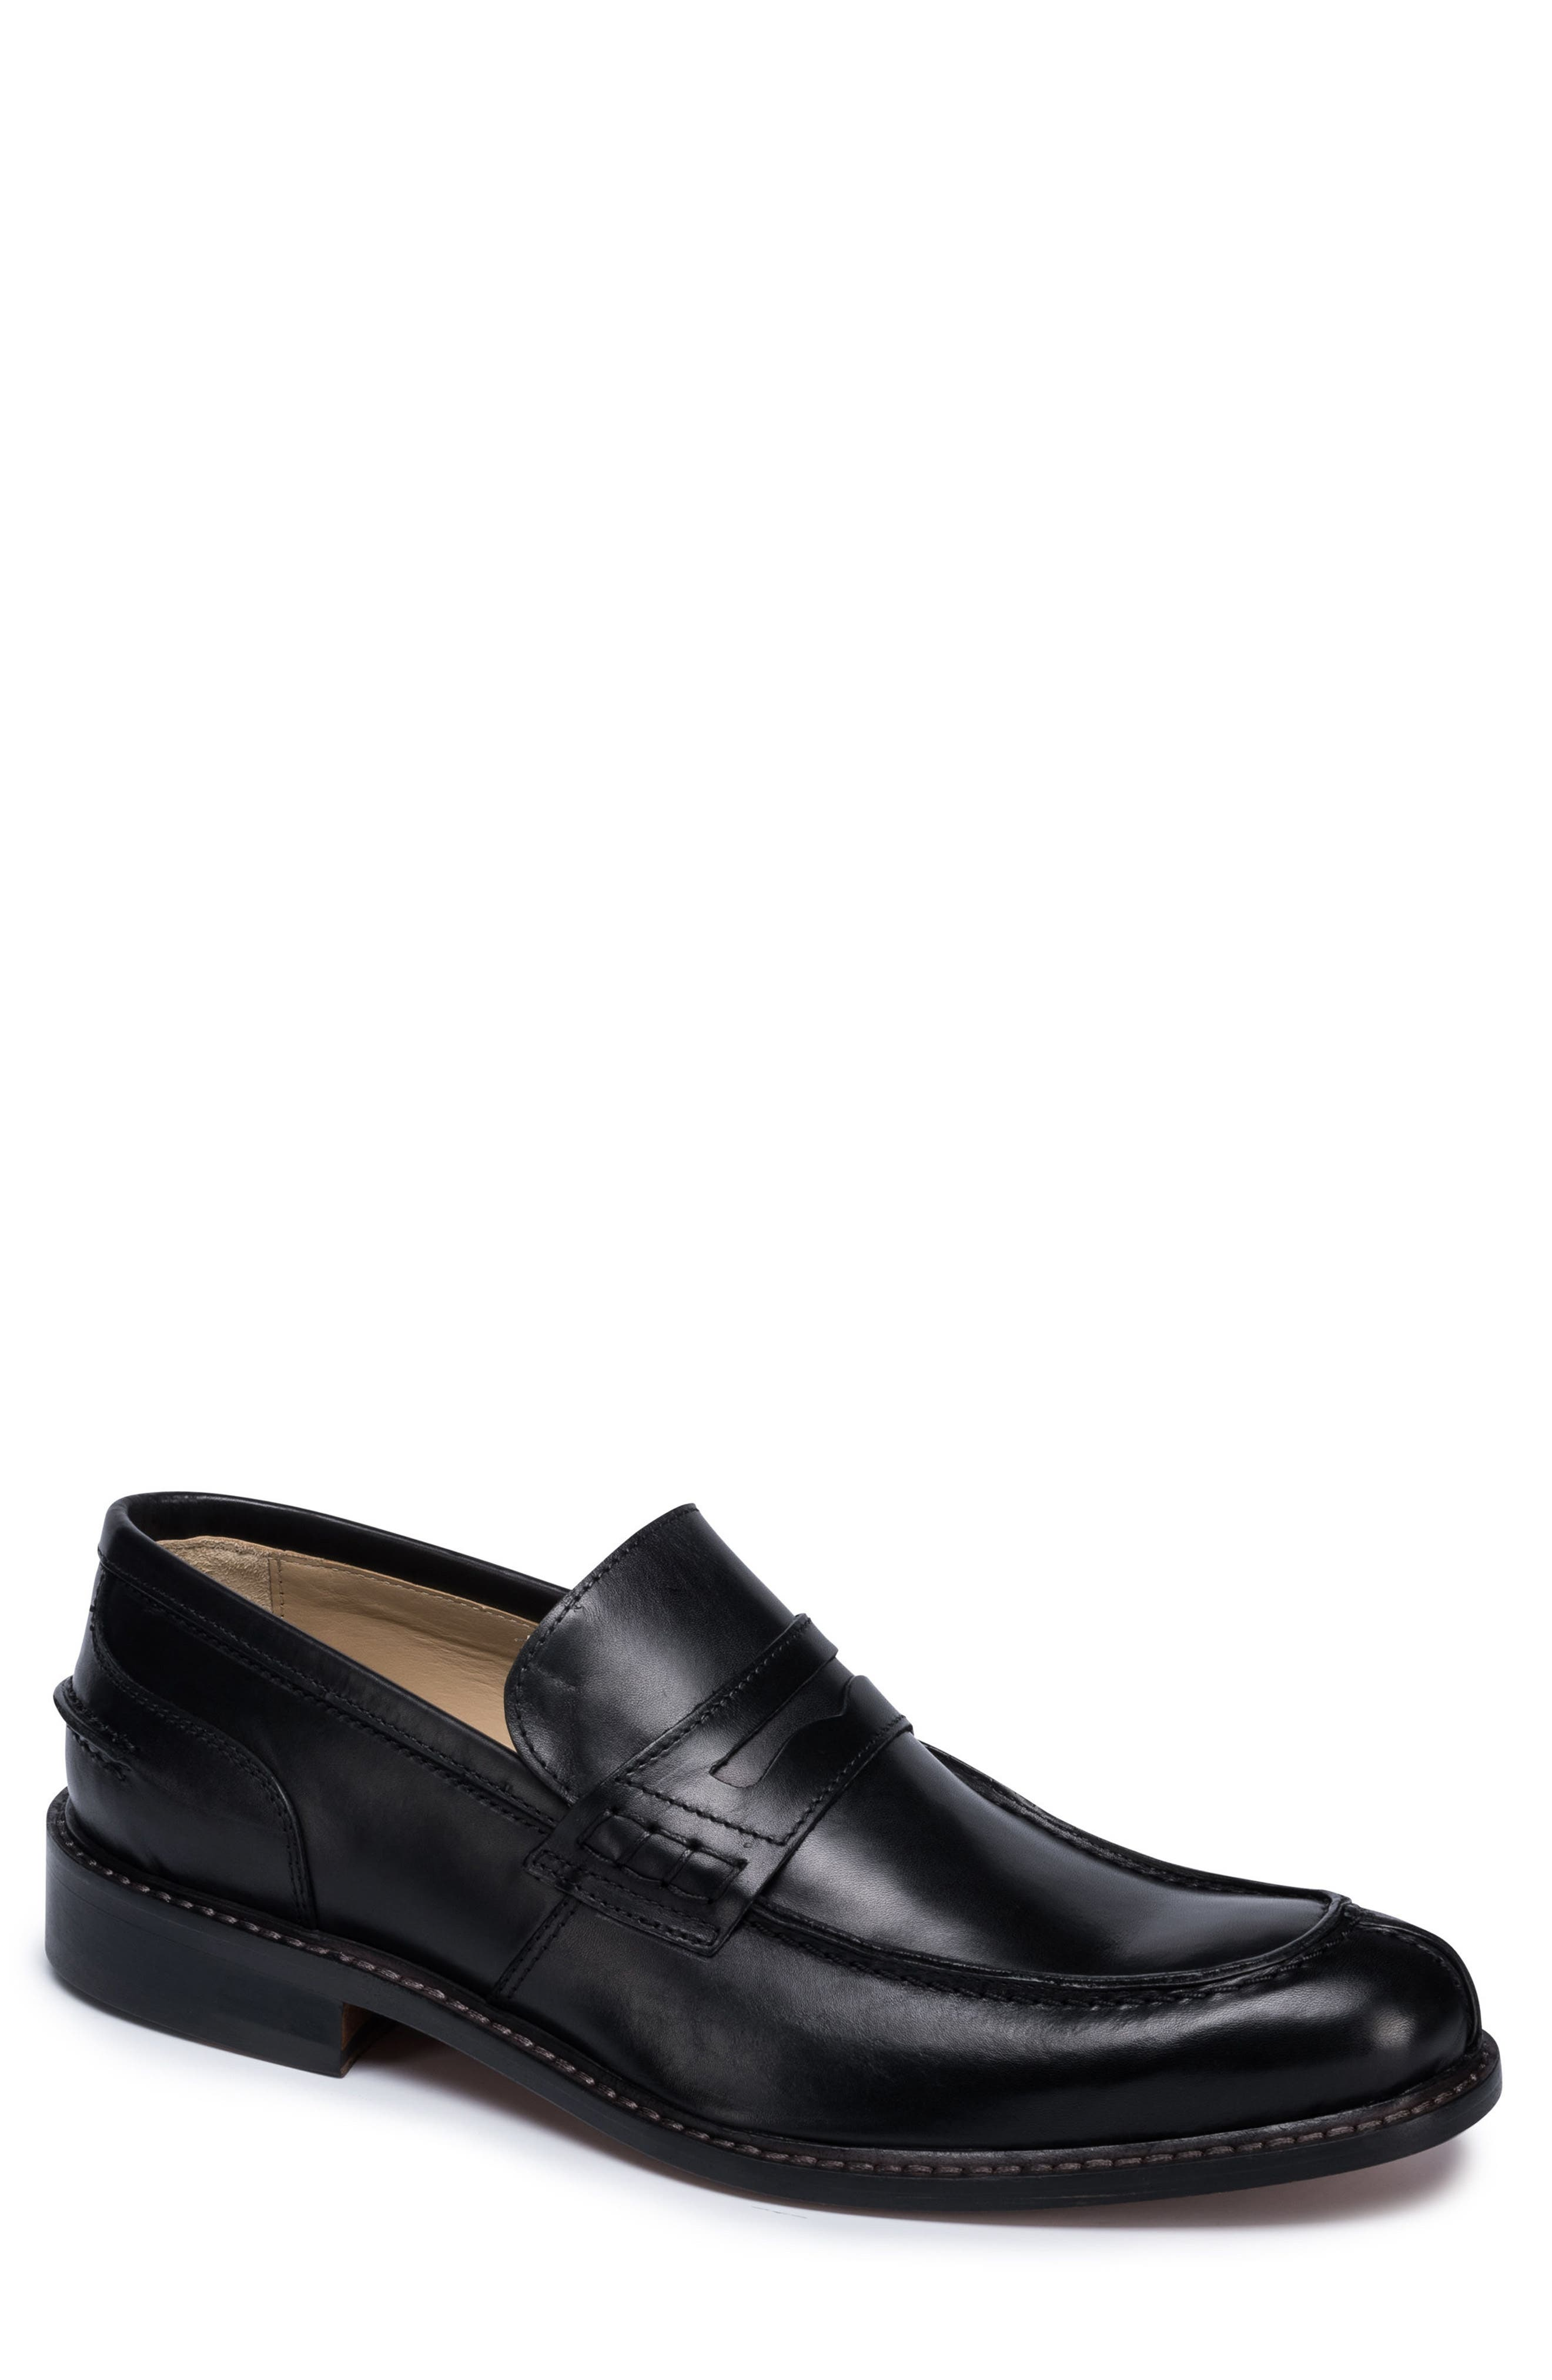 Apron Toe Penny Loafer,                         Main,                         color, Nero Leather